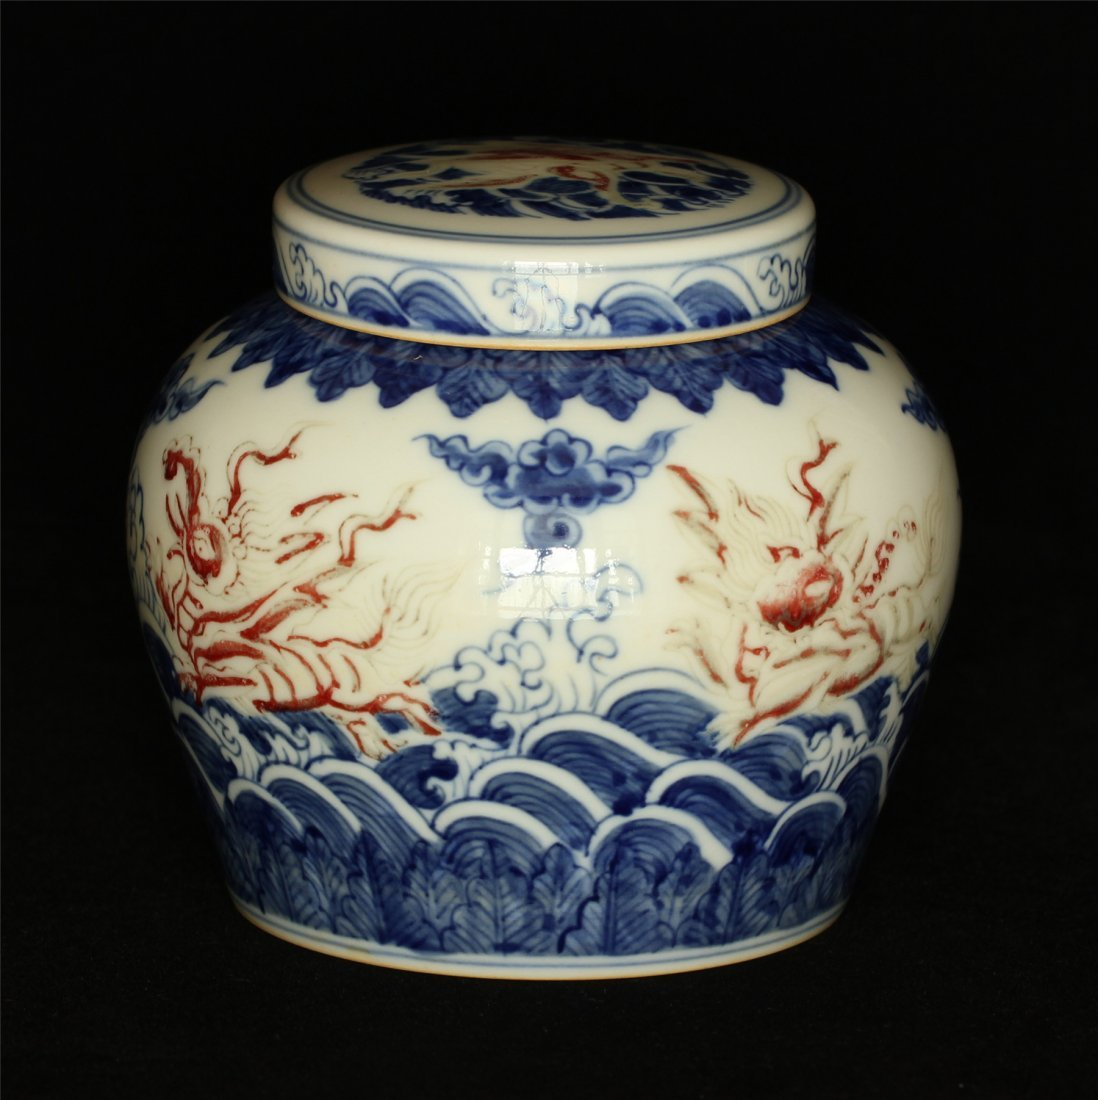 Blue and white & underglaze red porcelain jar of Tian - 10